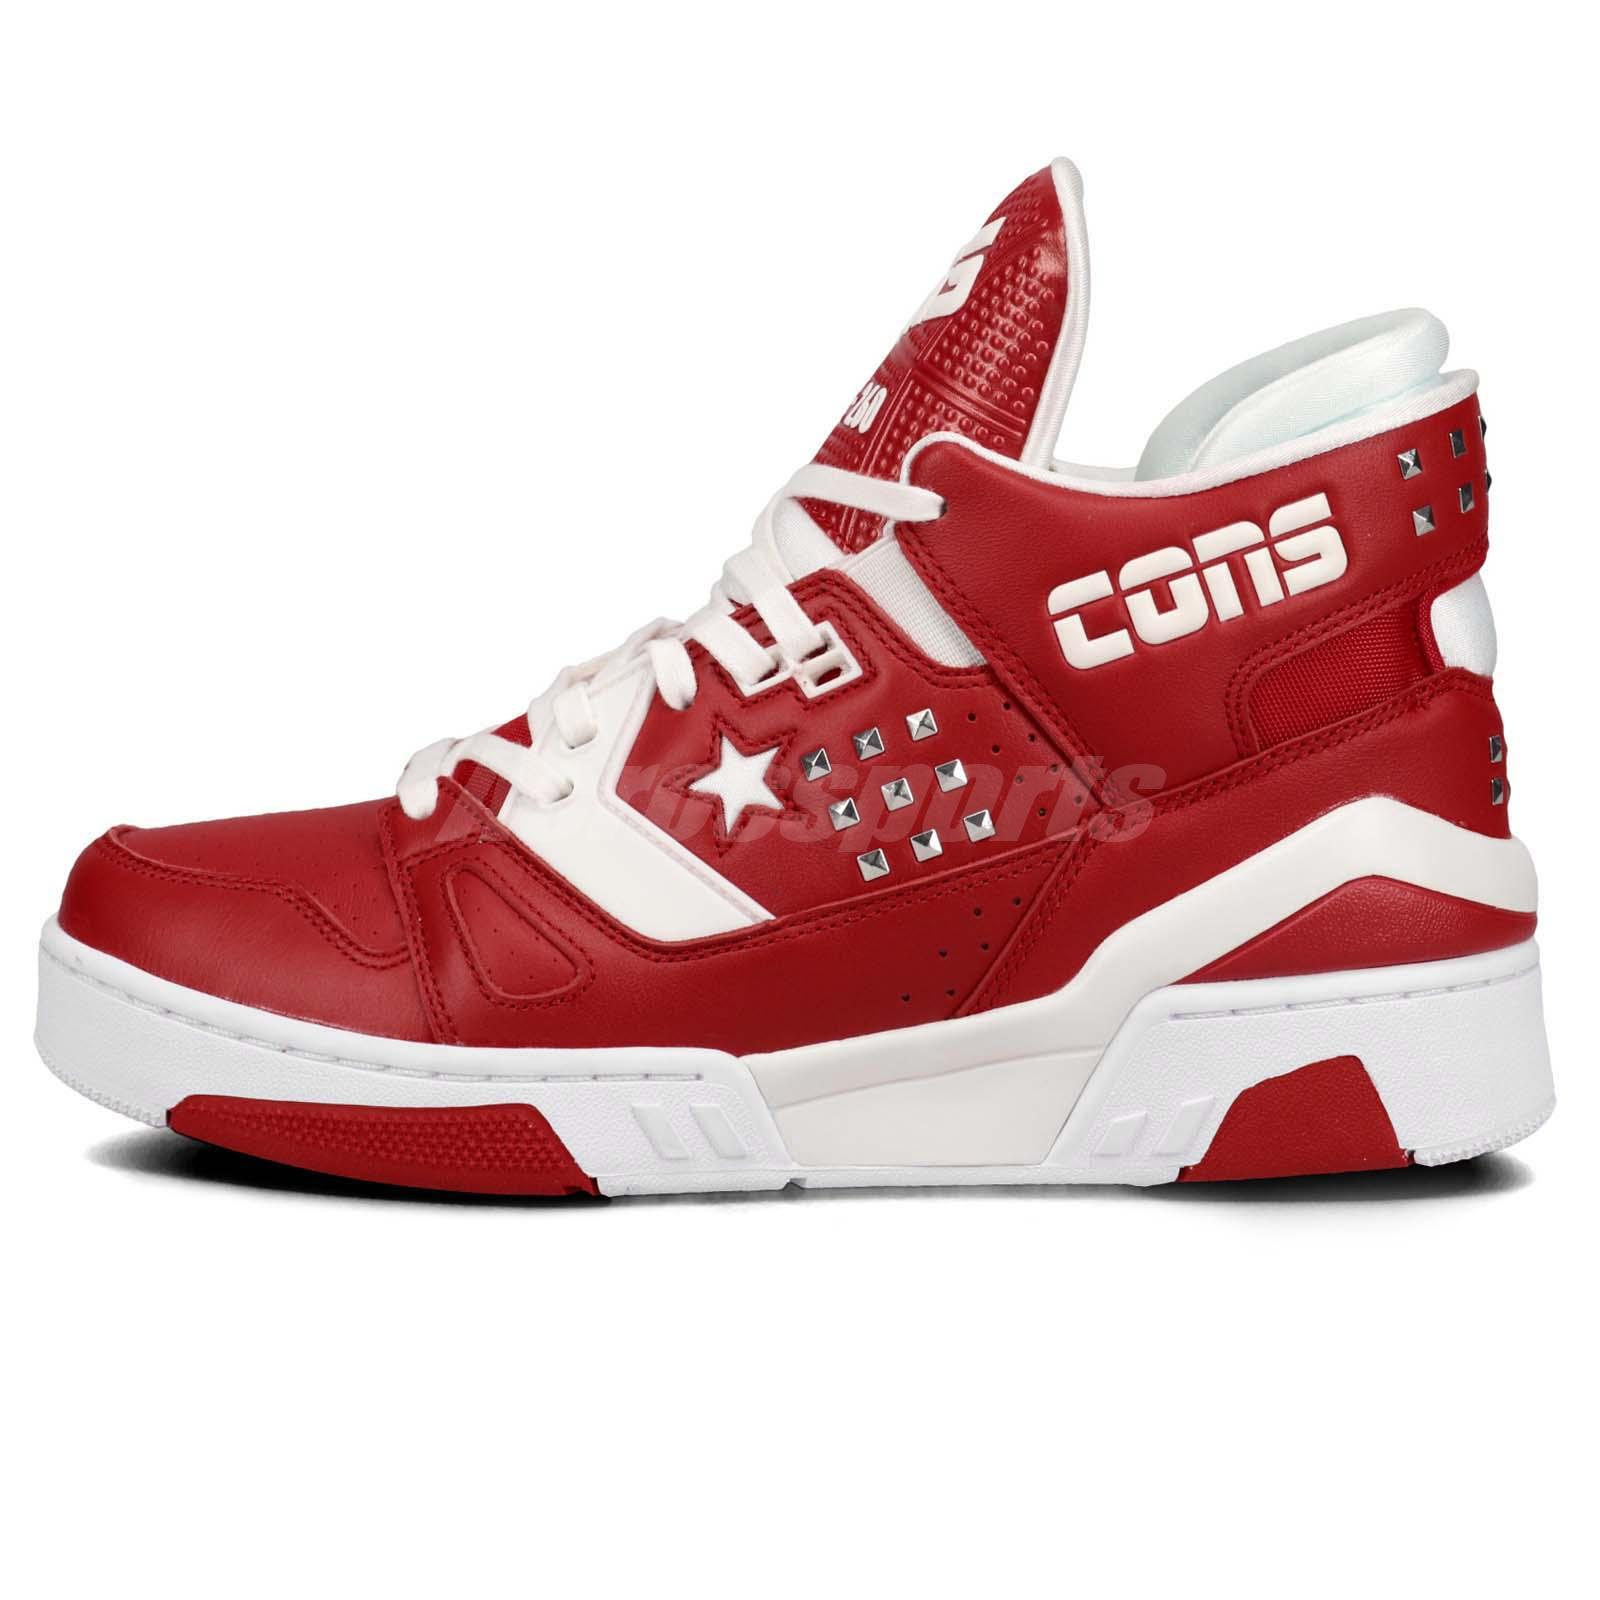 b720d0238d926b Converse ERX 260 Mid Just Don Metal Red White Men Basketball Shoes 163800C